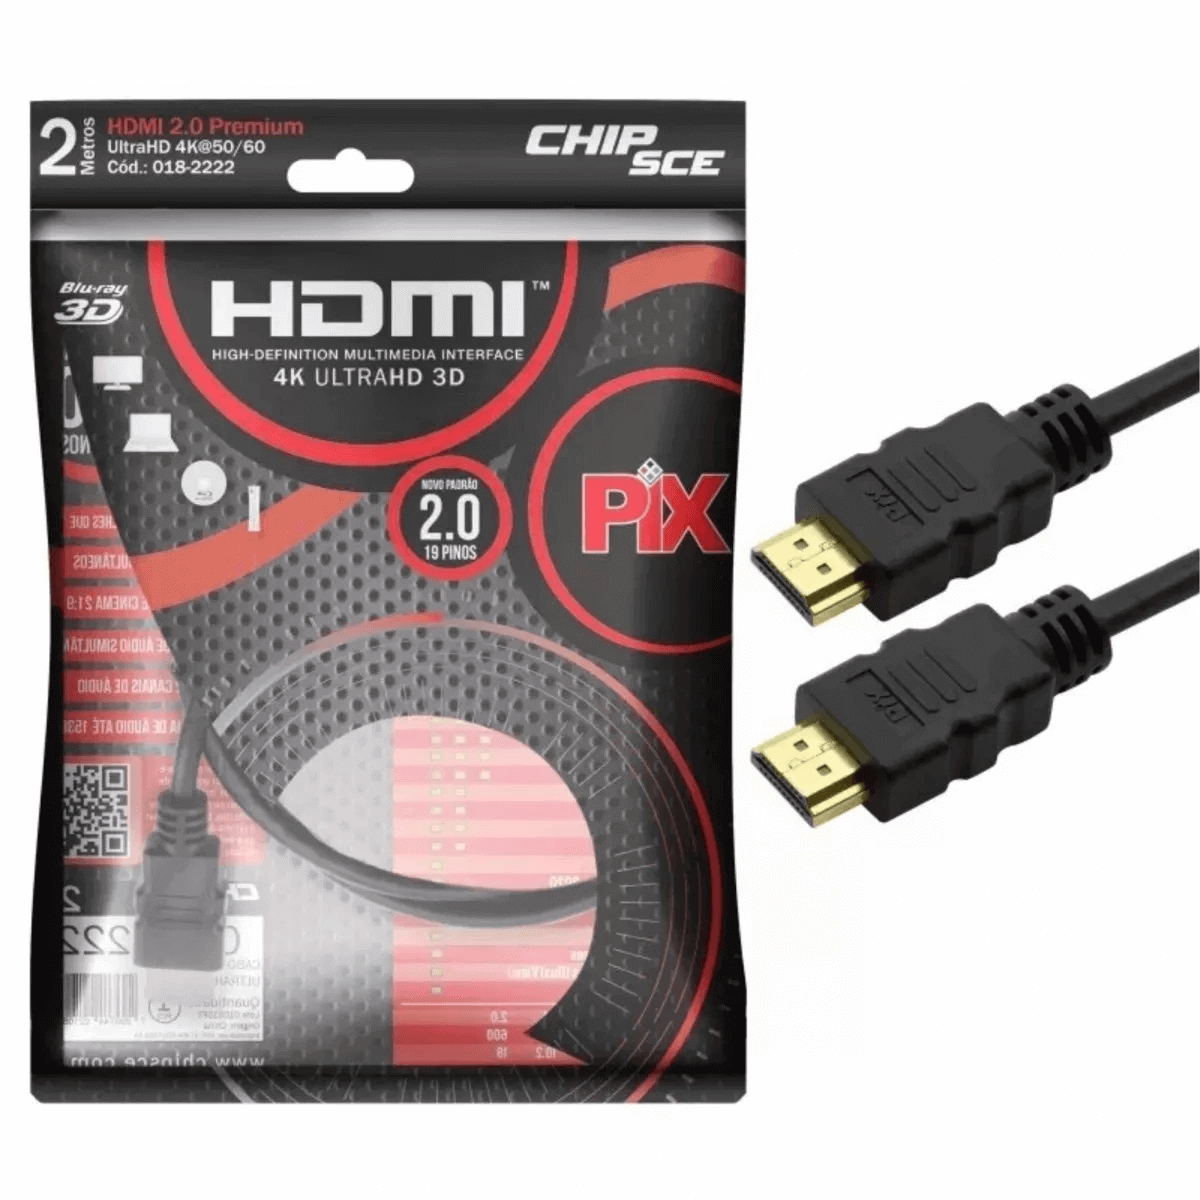 Cabo Hdmi 2.0 4k Hdr 3d 19 Pino 2m Pix Chip Sce 018-2222